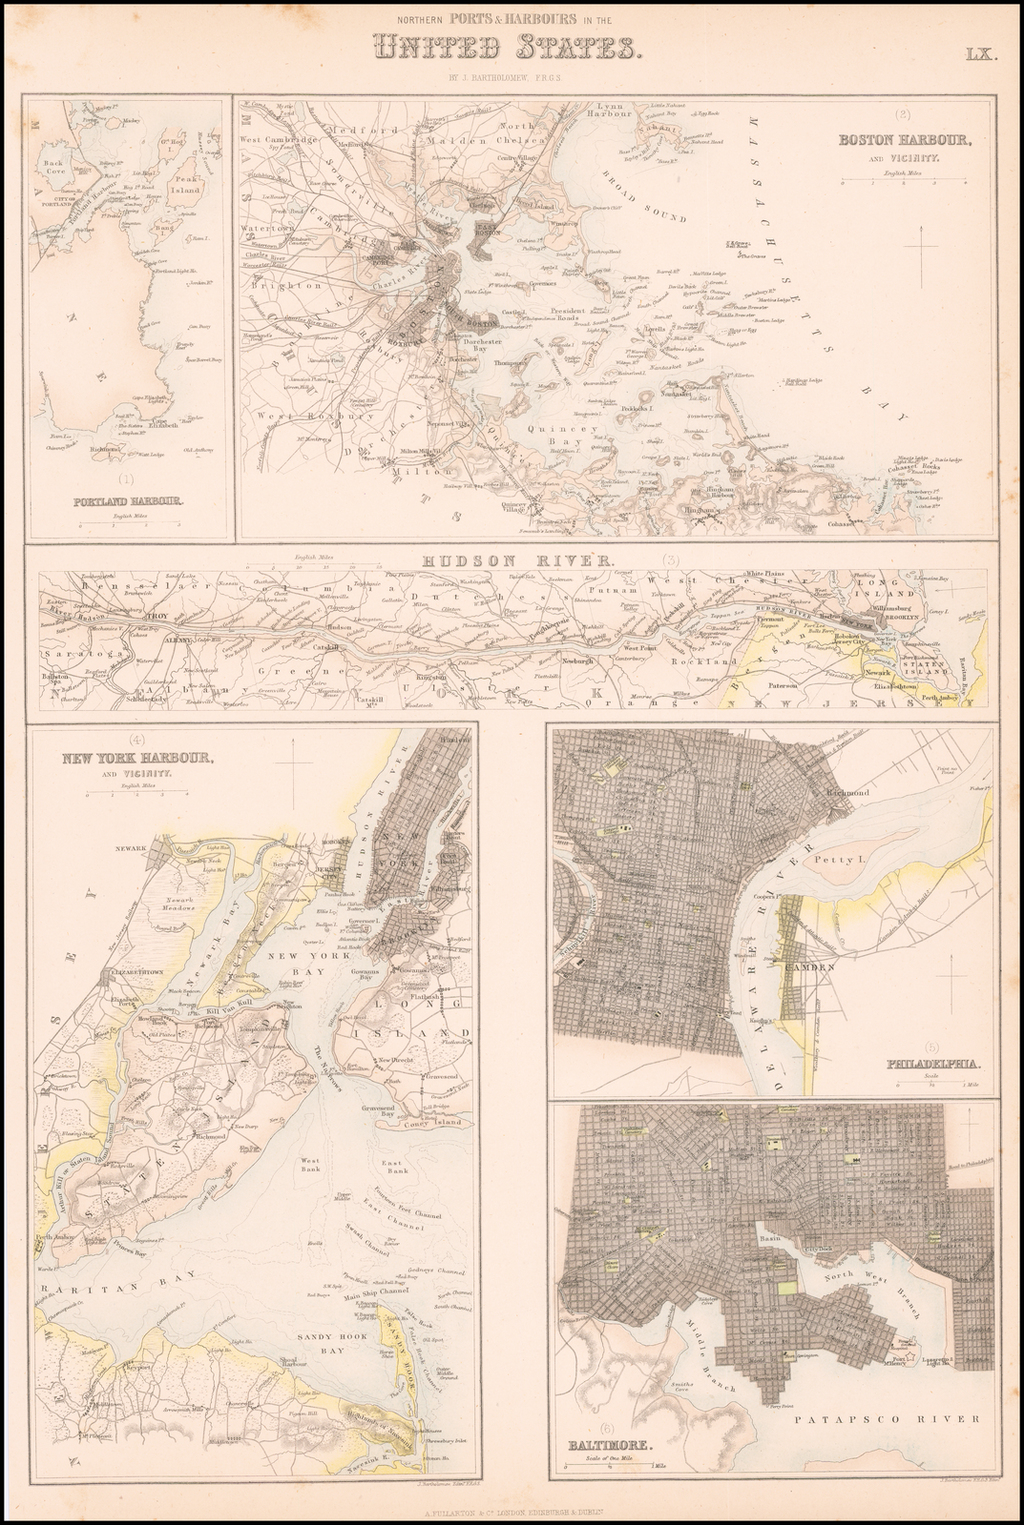 Northern Ports & Harbours in the United States [Portland, Boston, Hudson River, New York, Philadelphia, Baltimore] By Archibald Fullarton & Co.